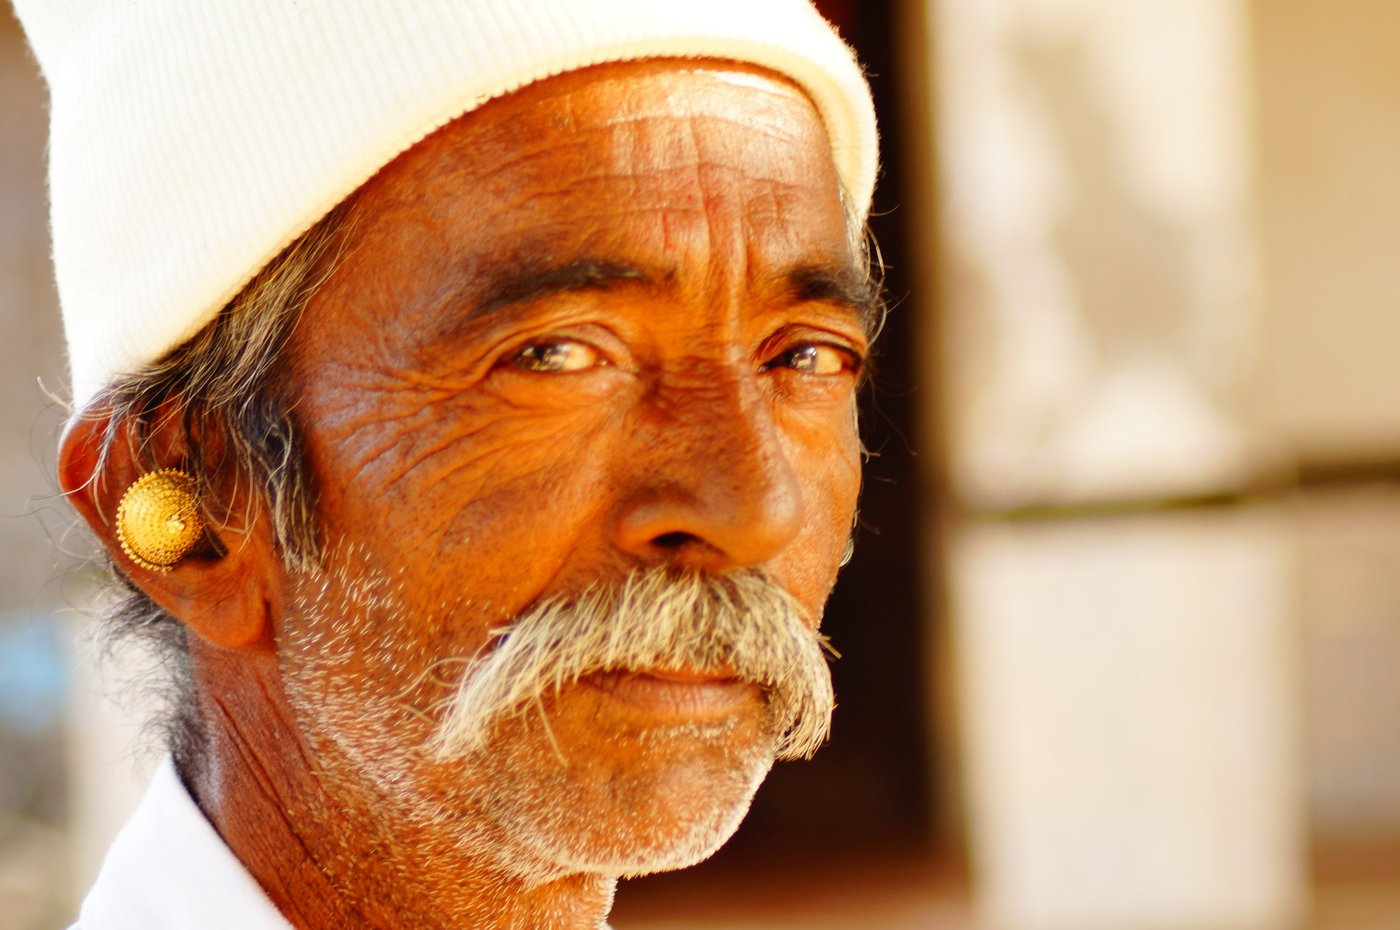 Old man with gold earring